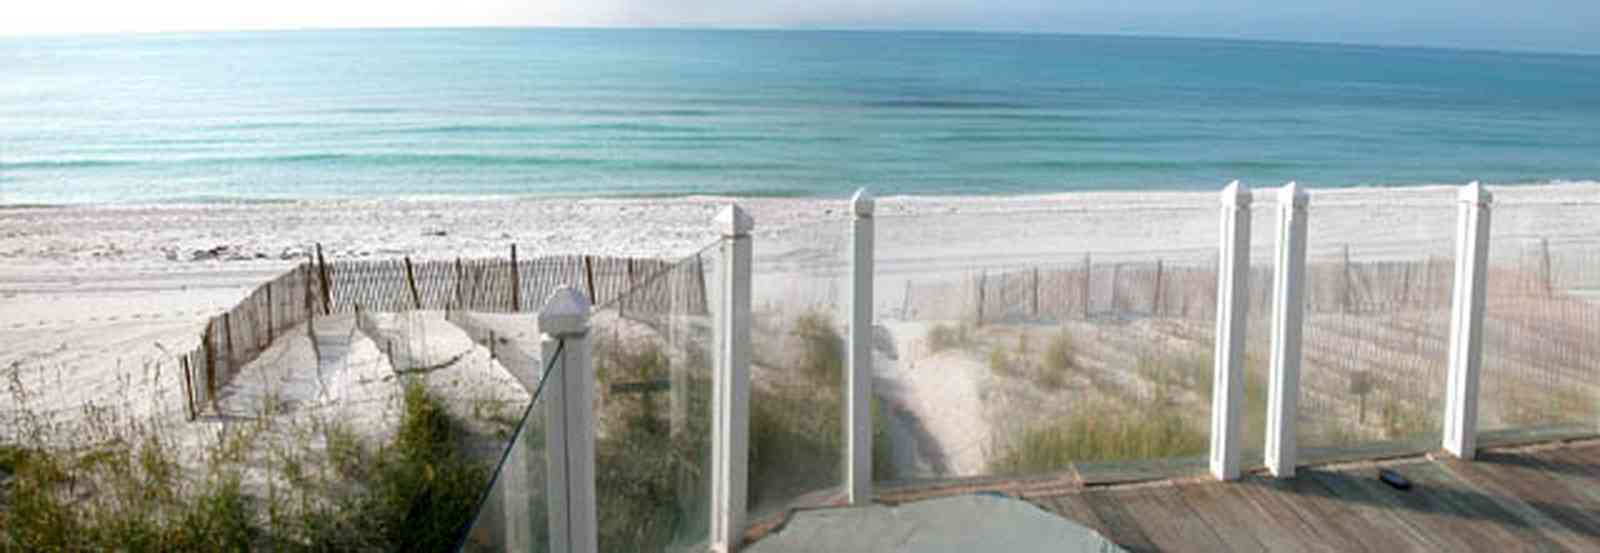 Pensacola-Beach:-Ariola-Drive-Art-Deco-House_06.jpg:  sand, crystal sand, white sand, sugar sand, sea oats, bauhaus architectural style, palm trees, dune restoration, beachfront property